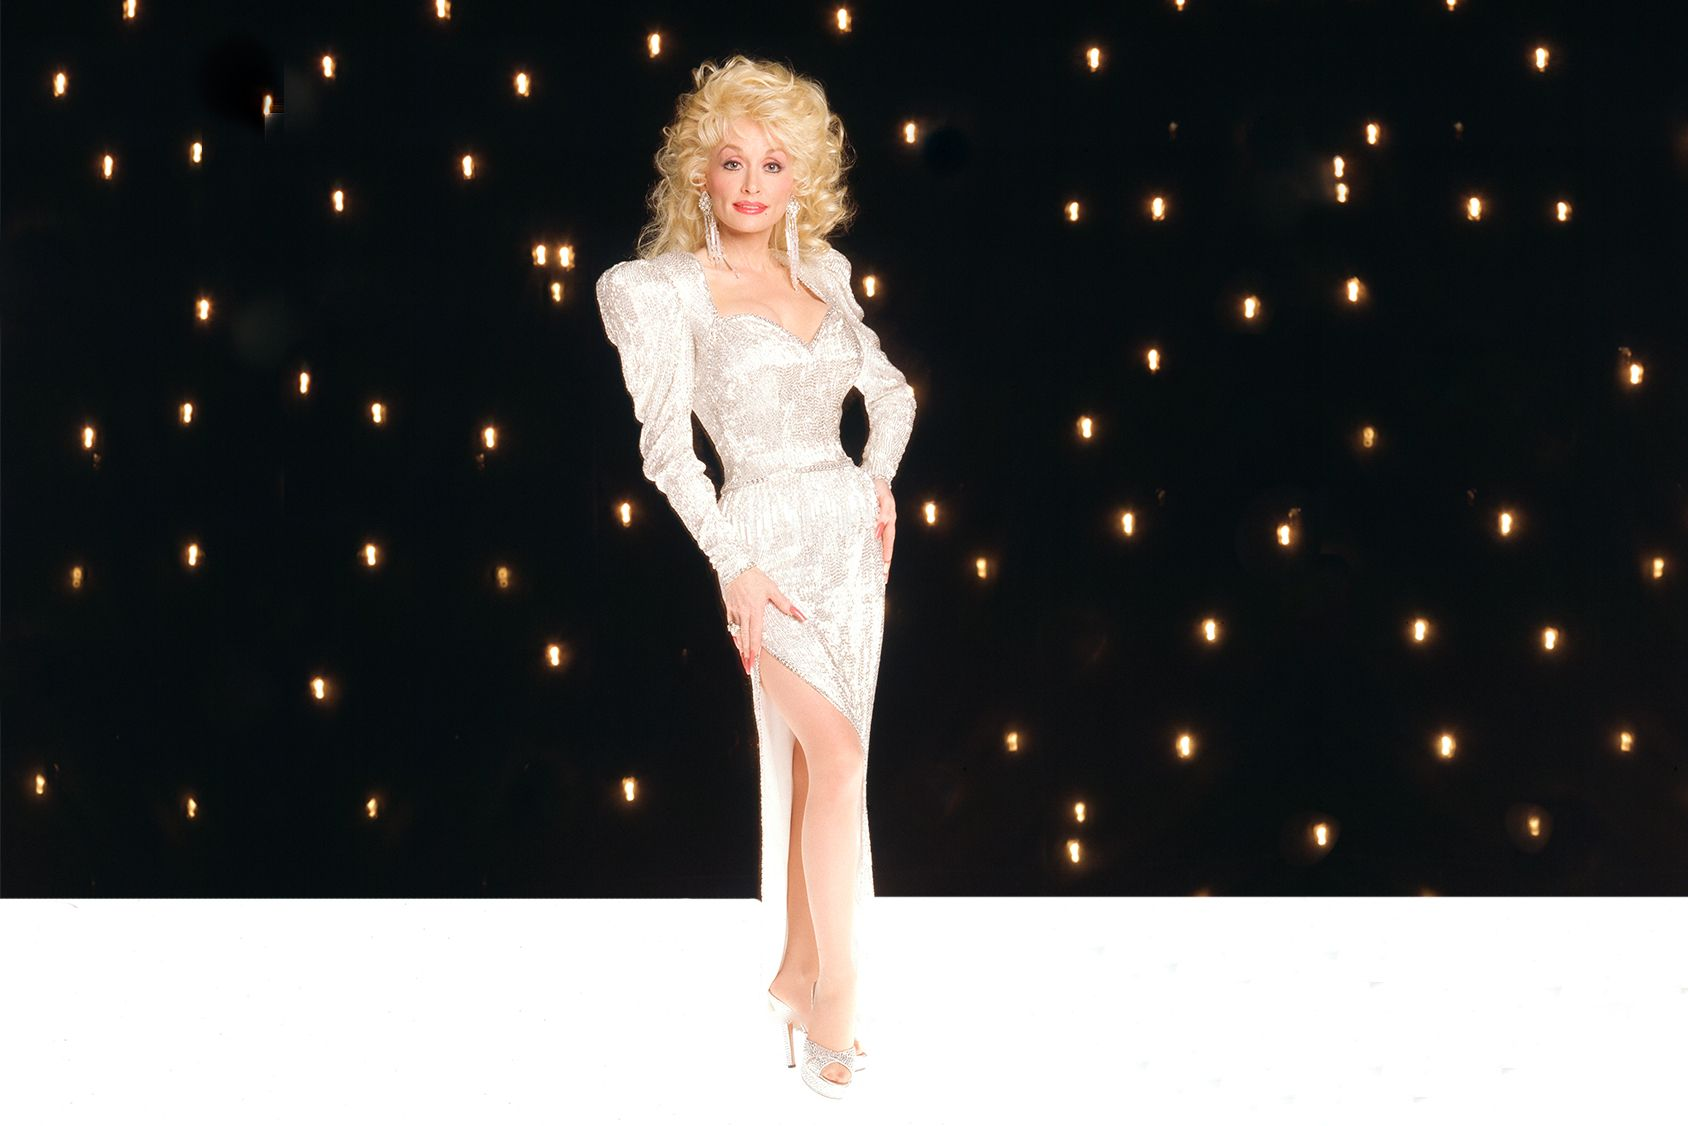 Image Result For Dolly Parton Body Dolly Parton Dolly Parton